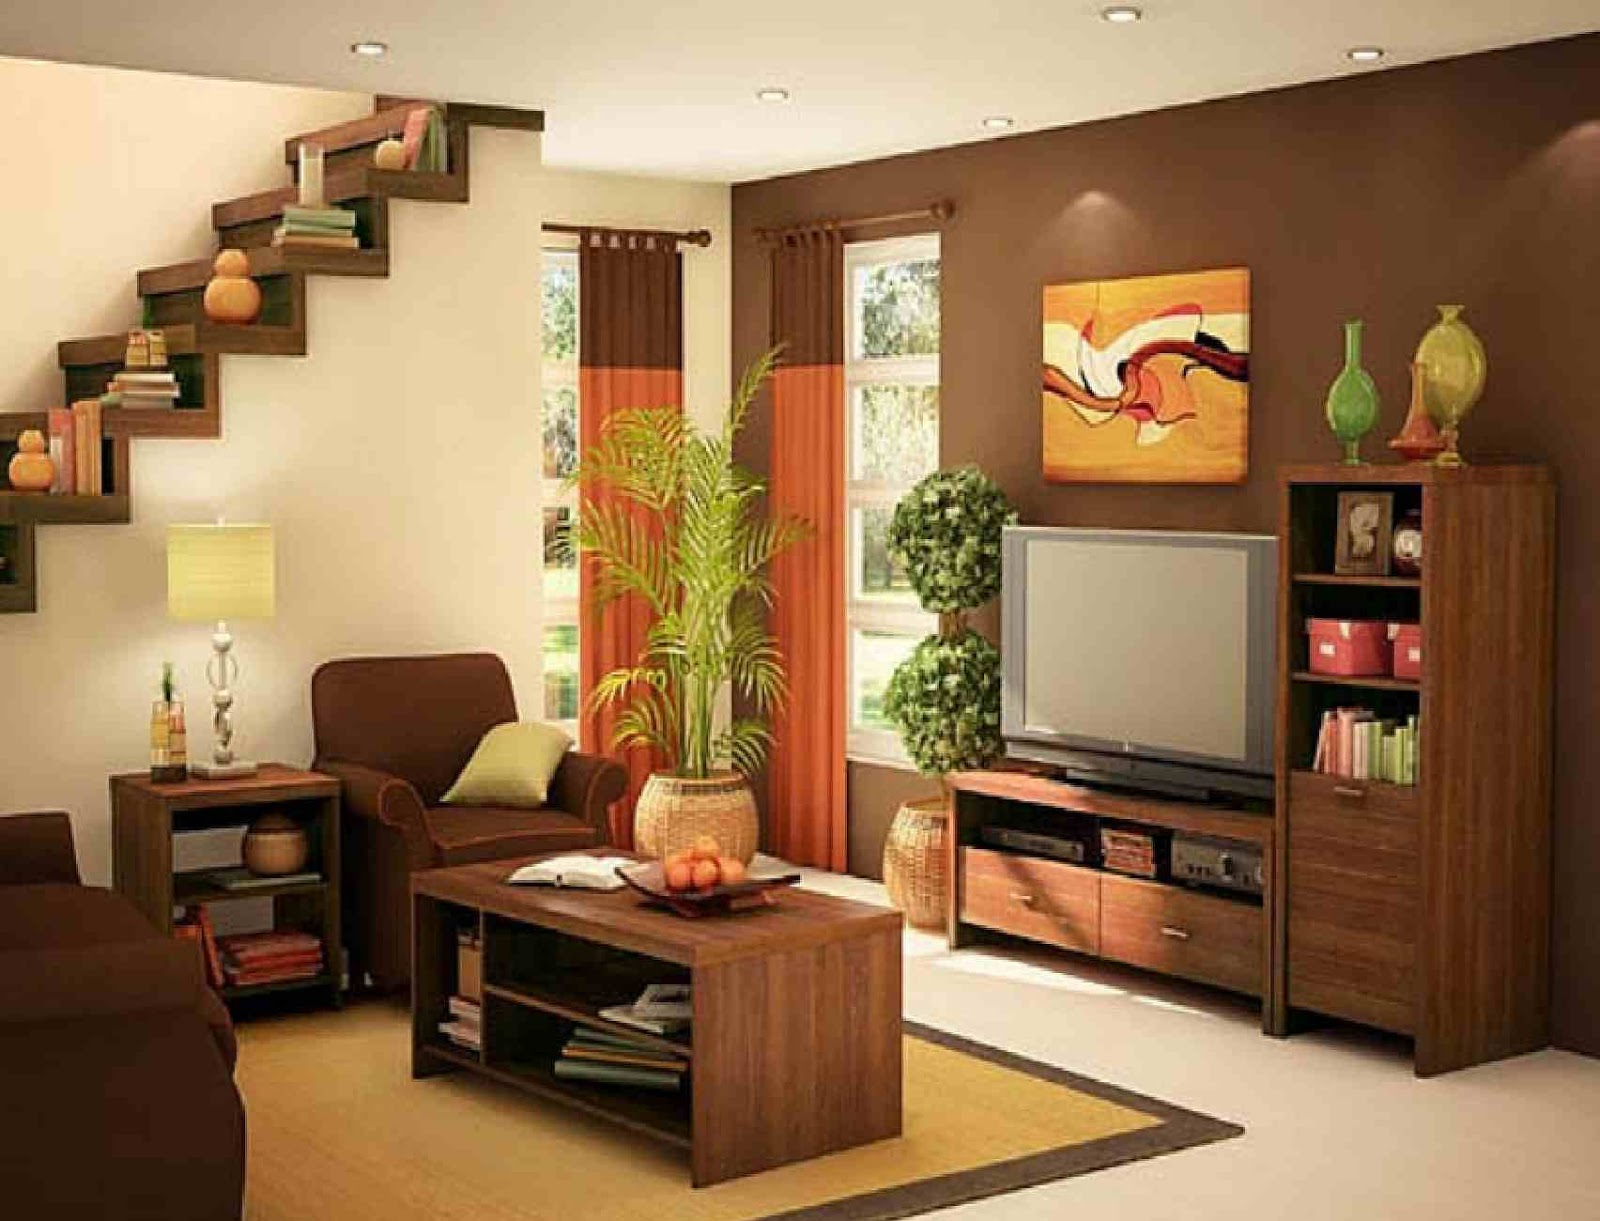 Home interior designs simple living room designs for Drawing room interior ideas